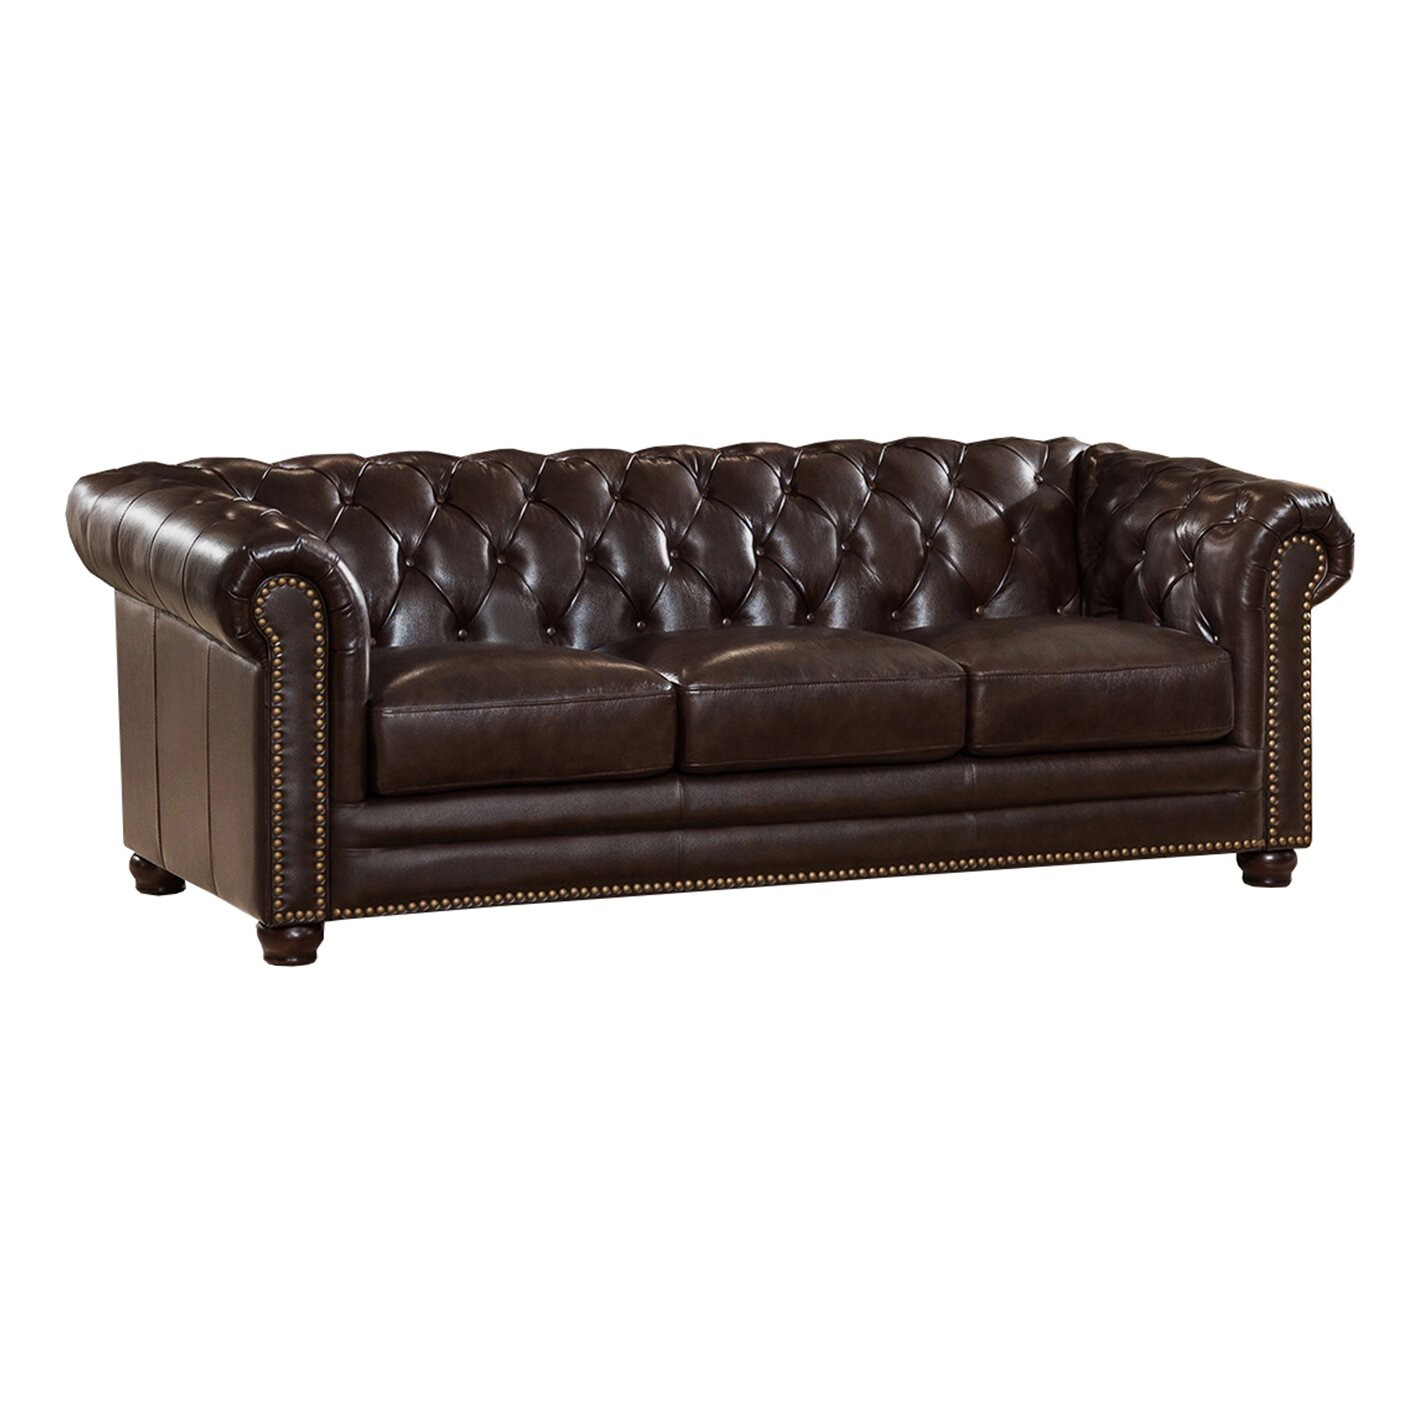 Amax Kensington Top Grain Leather Chesterfield Sofa and Two Chair Set Wayfair